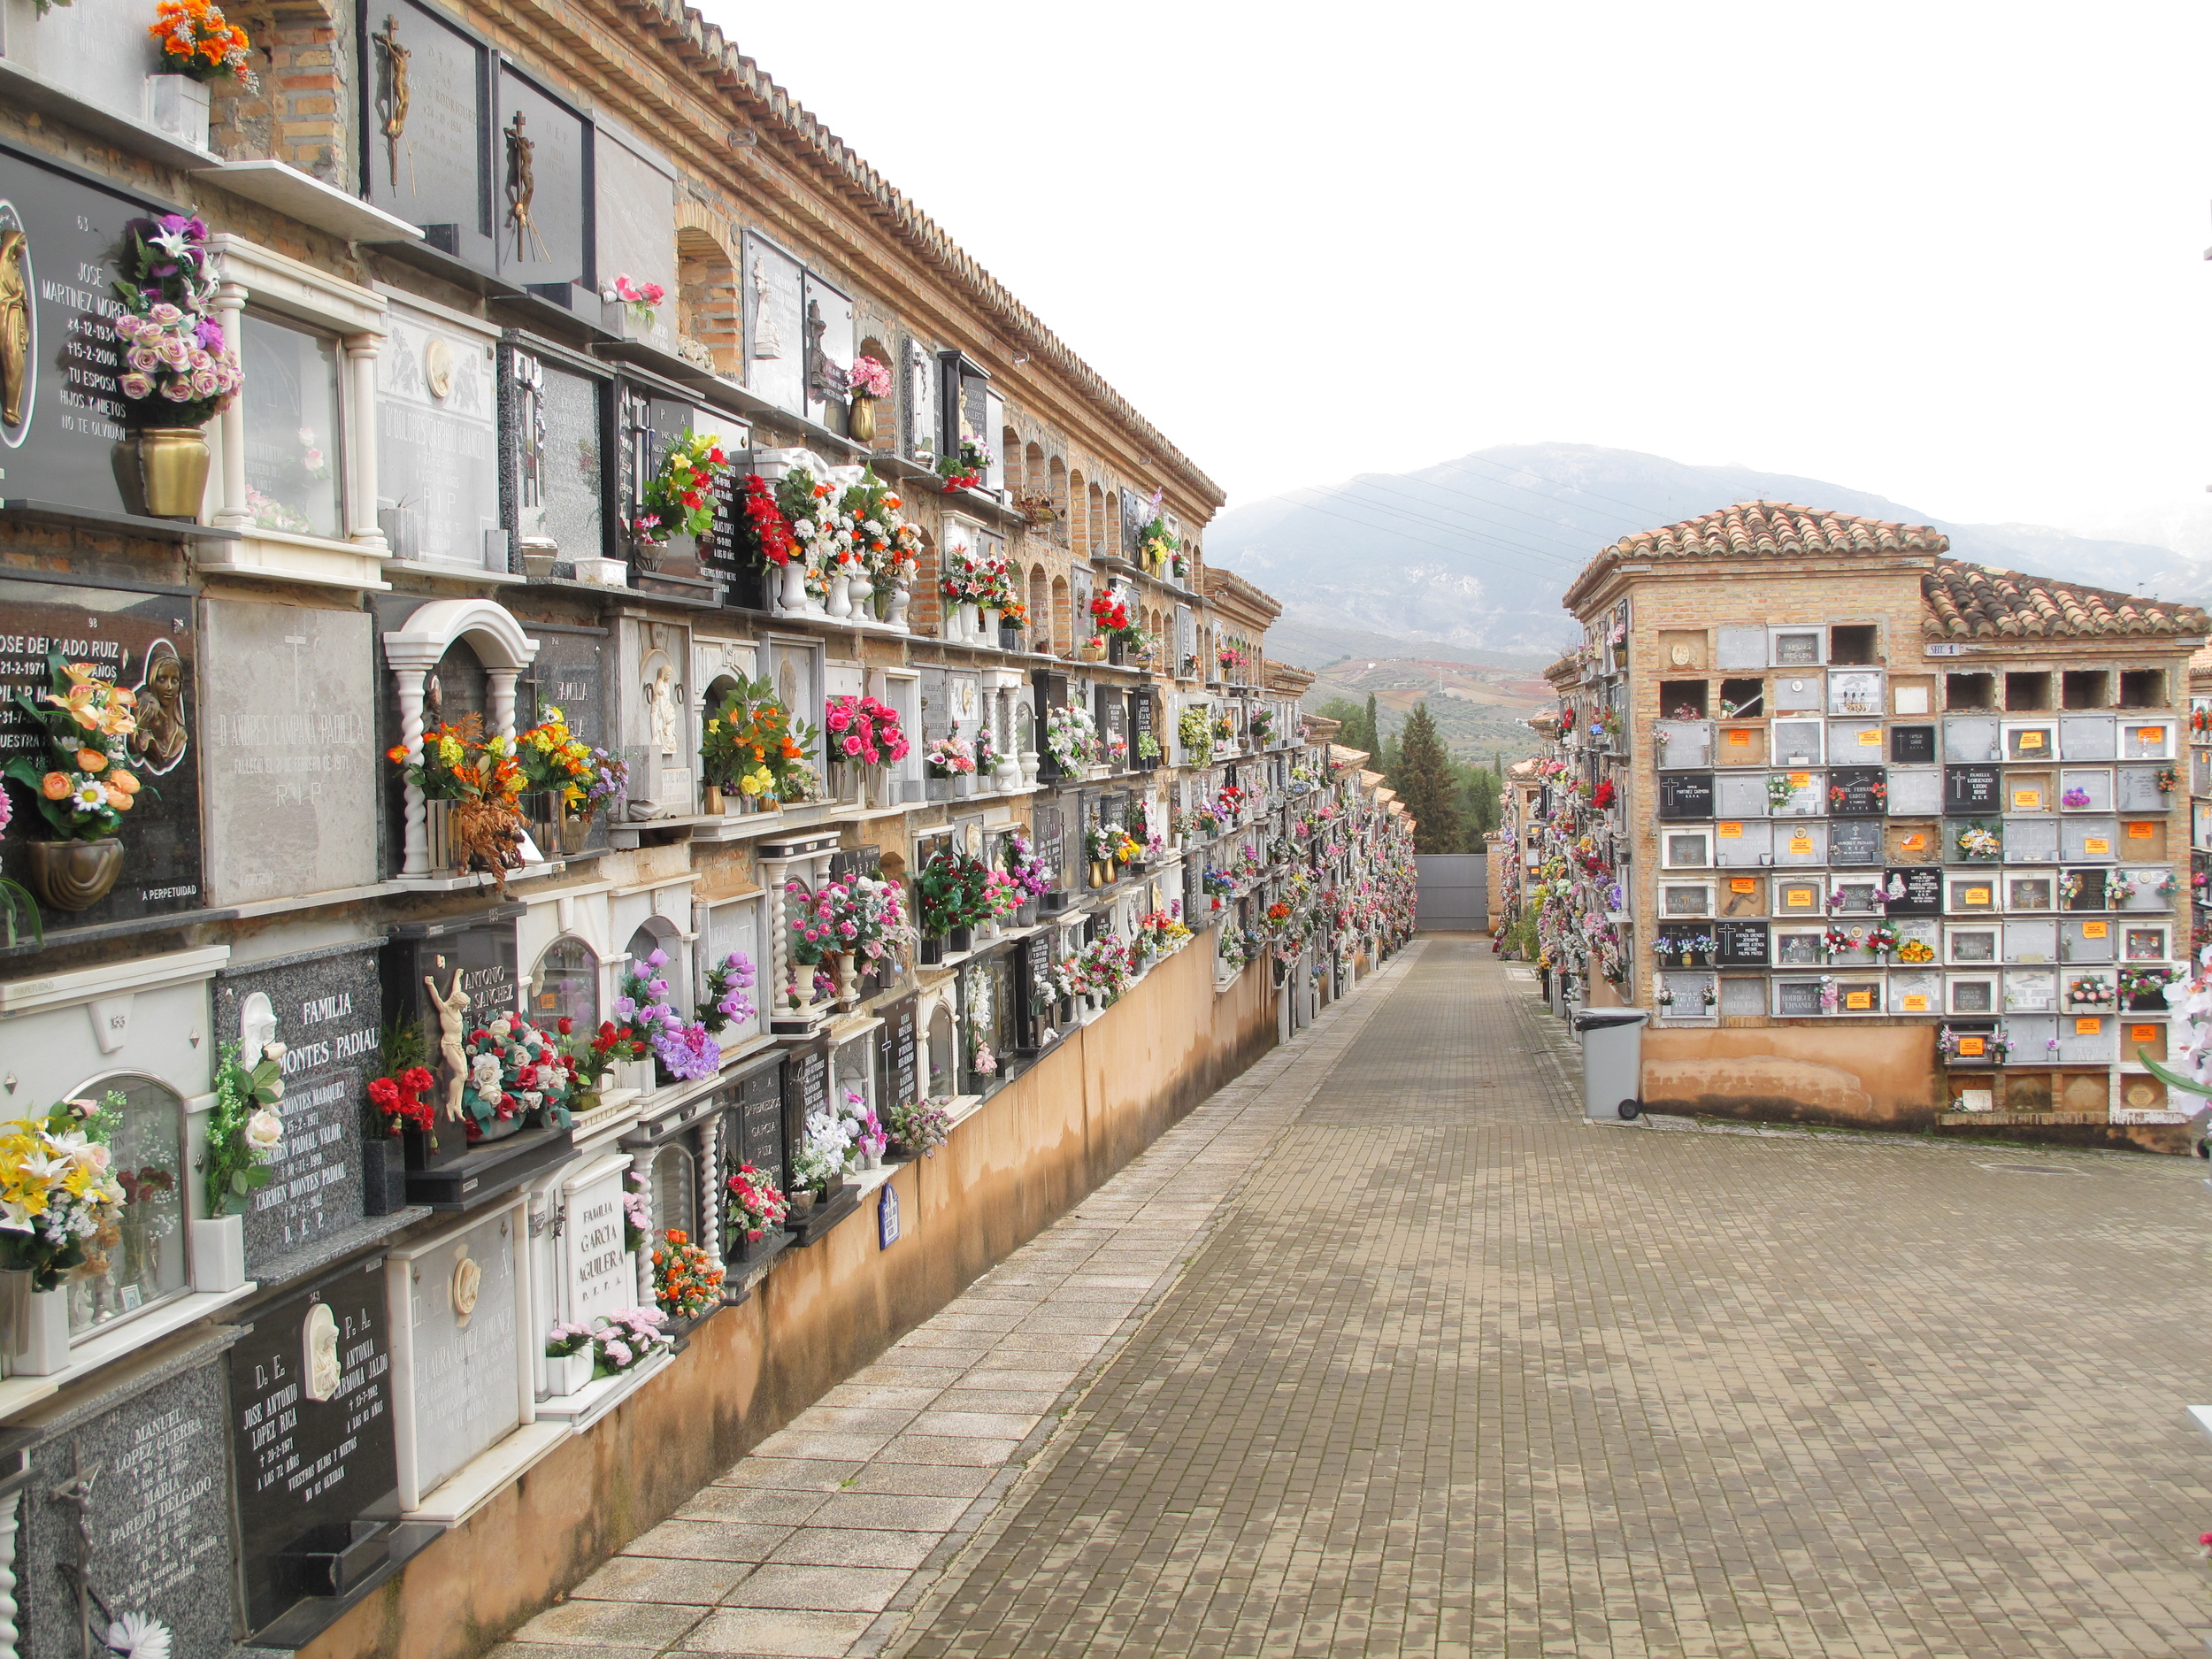 Cemetery in granada - with small boxes in large buildings, each one with a plaque and flowers